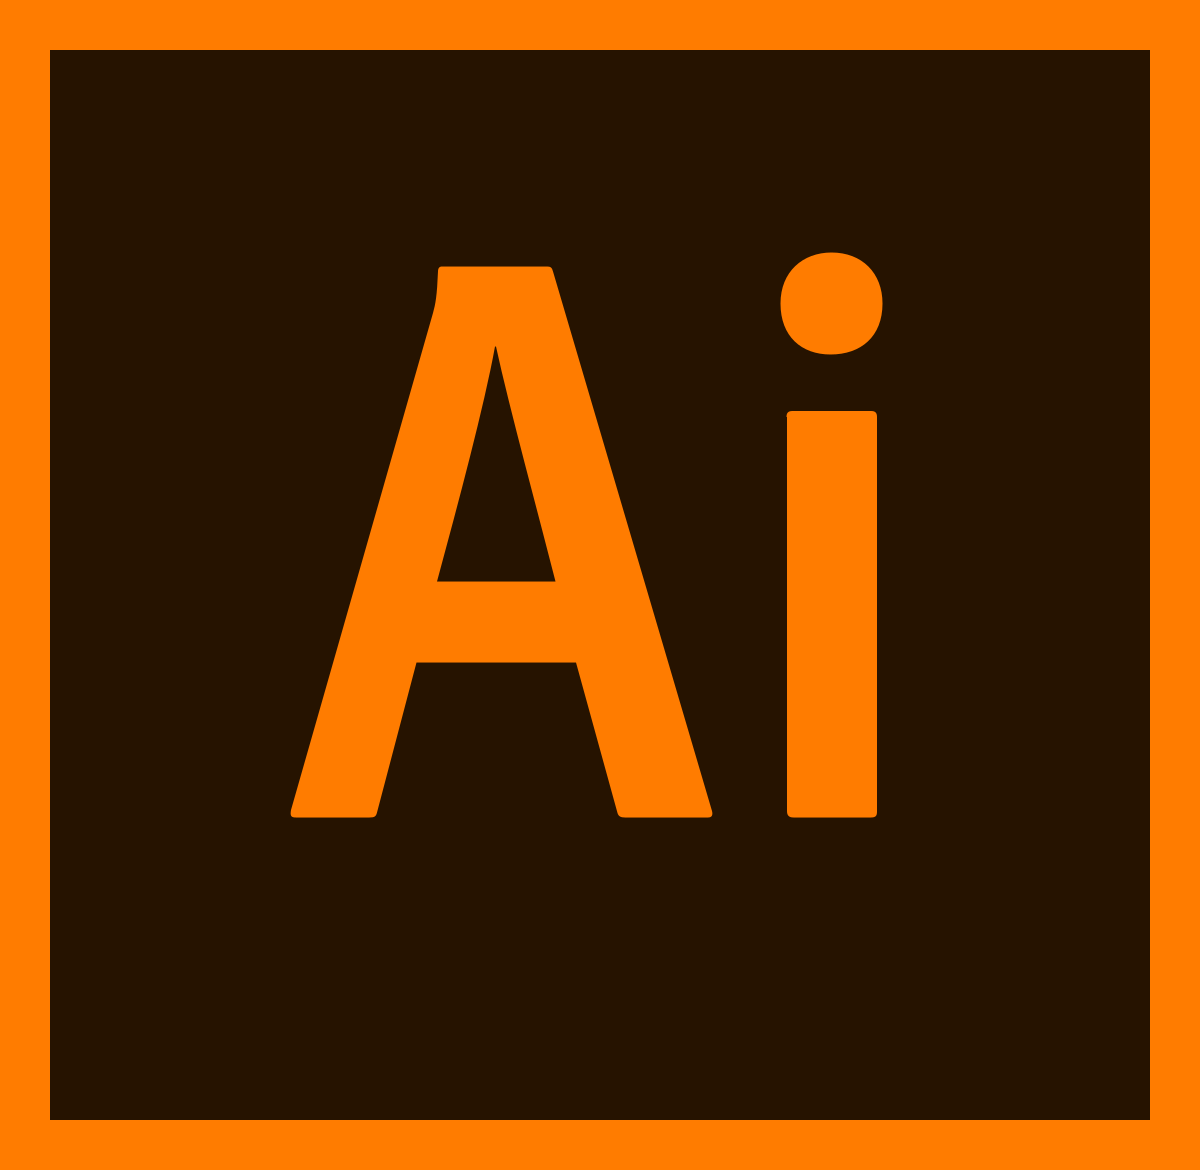 adobe Illustrator CC 2019 full crack torrent download